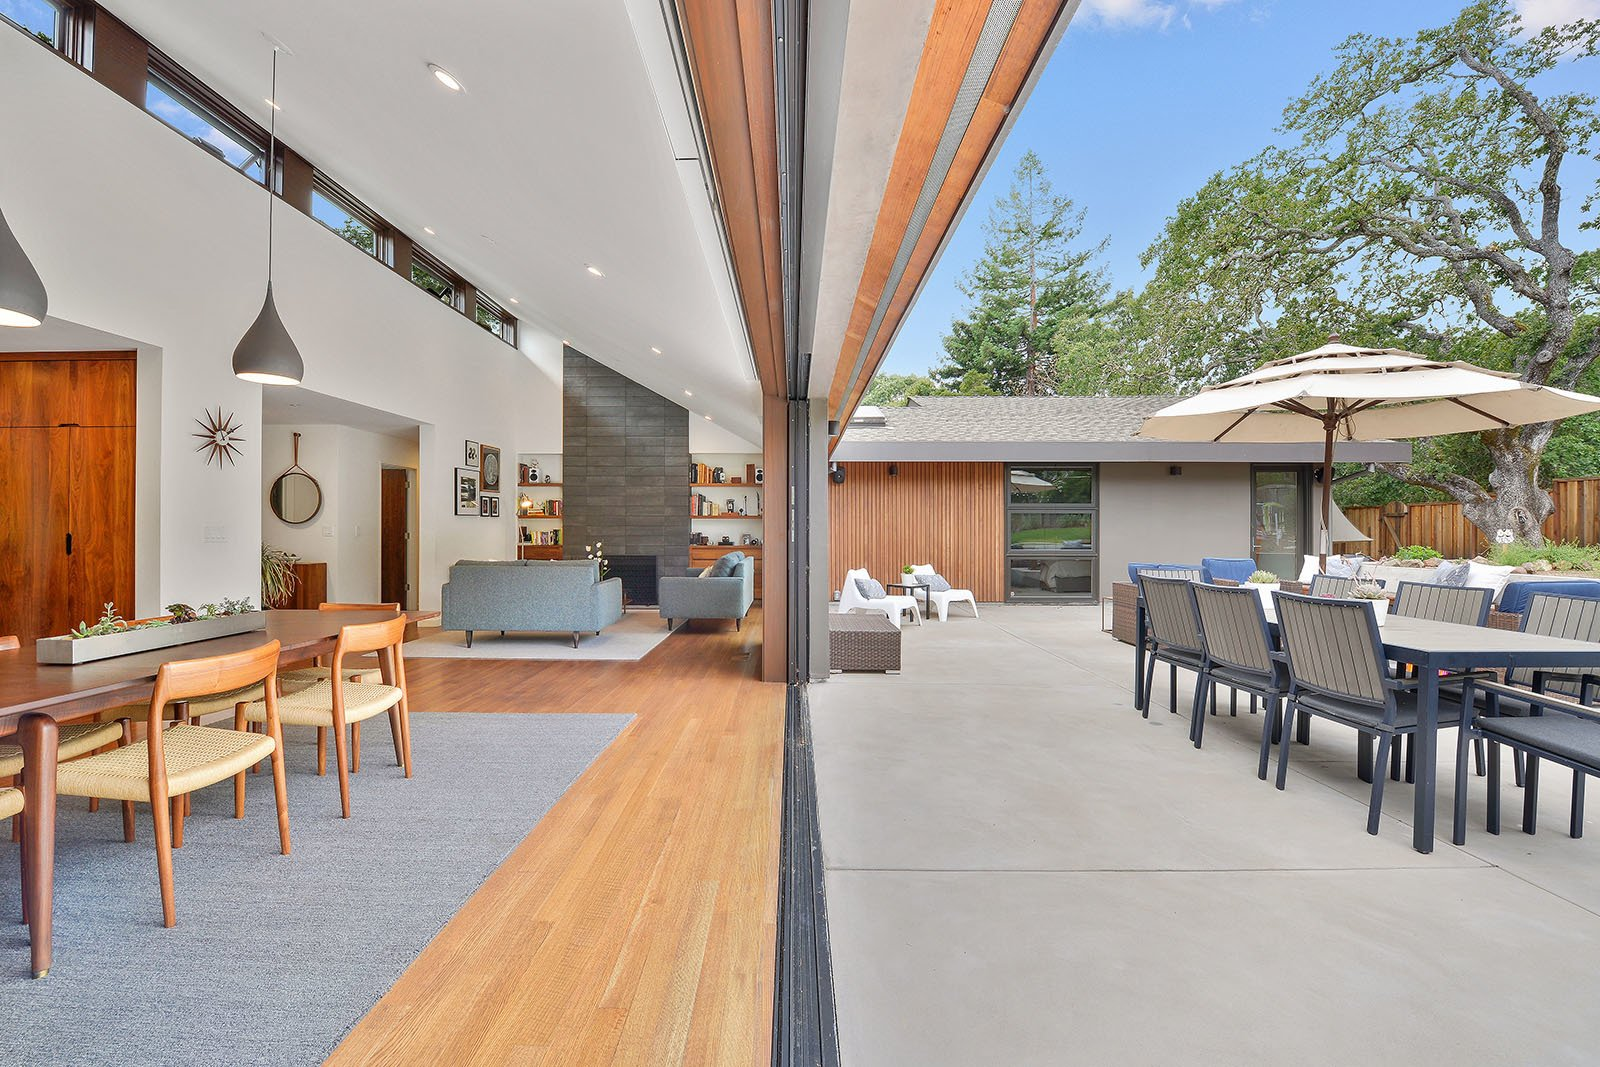 Inside & outside Tagged: Outdoor, Back Yard, and Large Patio, Porch, Deck.  Portola Valley by patrick perez/designpad architecture